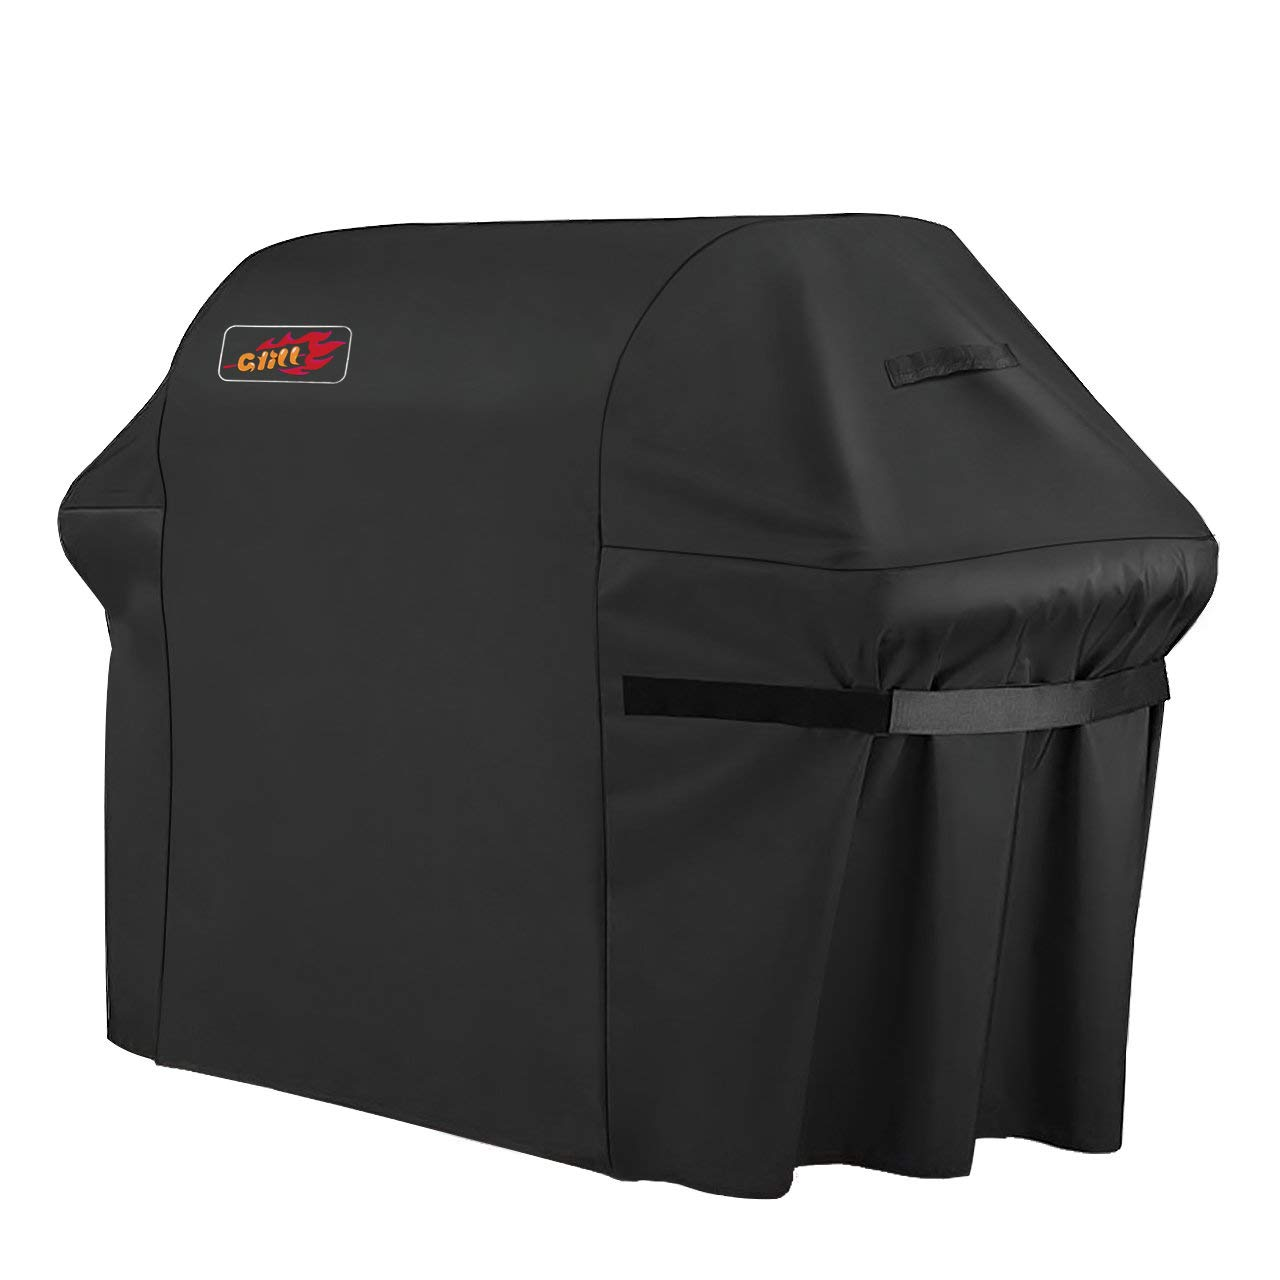 VicTsing Grill Cover, 72-Inch Waterproof BBQ Cover, 600D Heavy Duty Gas Grill Cover for weber,Brinkmann, Char Broil, Holland and Jenn Air(UV & Dust & Water Resistant, Weather Resistant, Rip Resistant) by VicTsing